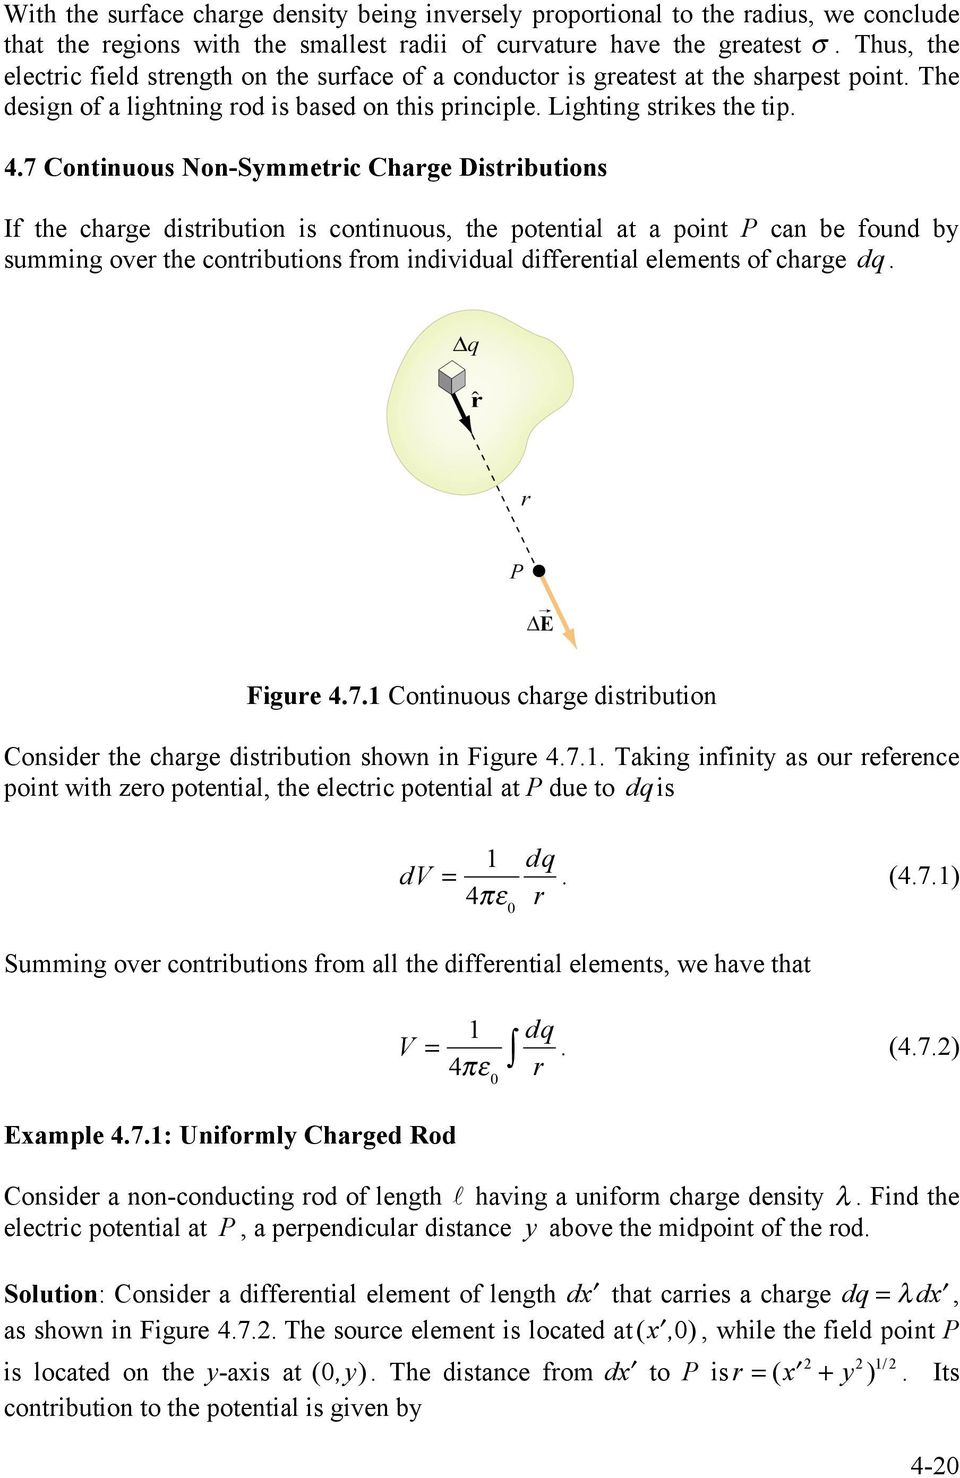 7 Continuous Non-Symmetic Chage Distibutions If the chage distibution is continuous, the potential at a point P can be found by summing ove the contibutions fom individual diffeential elements of